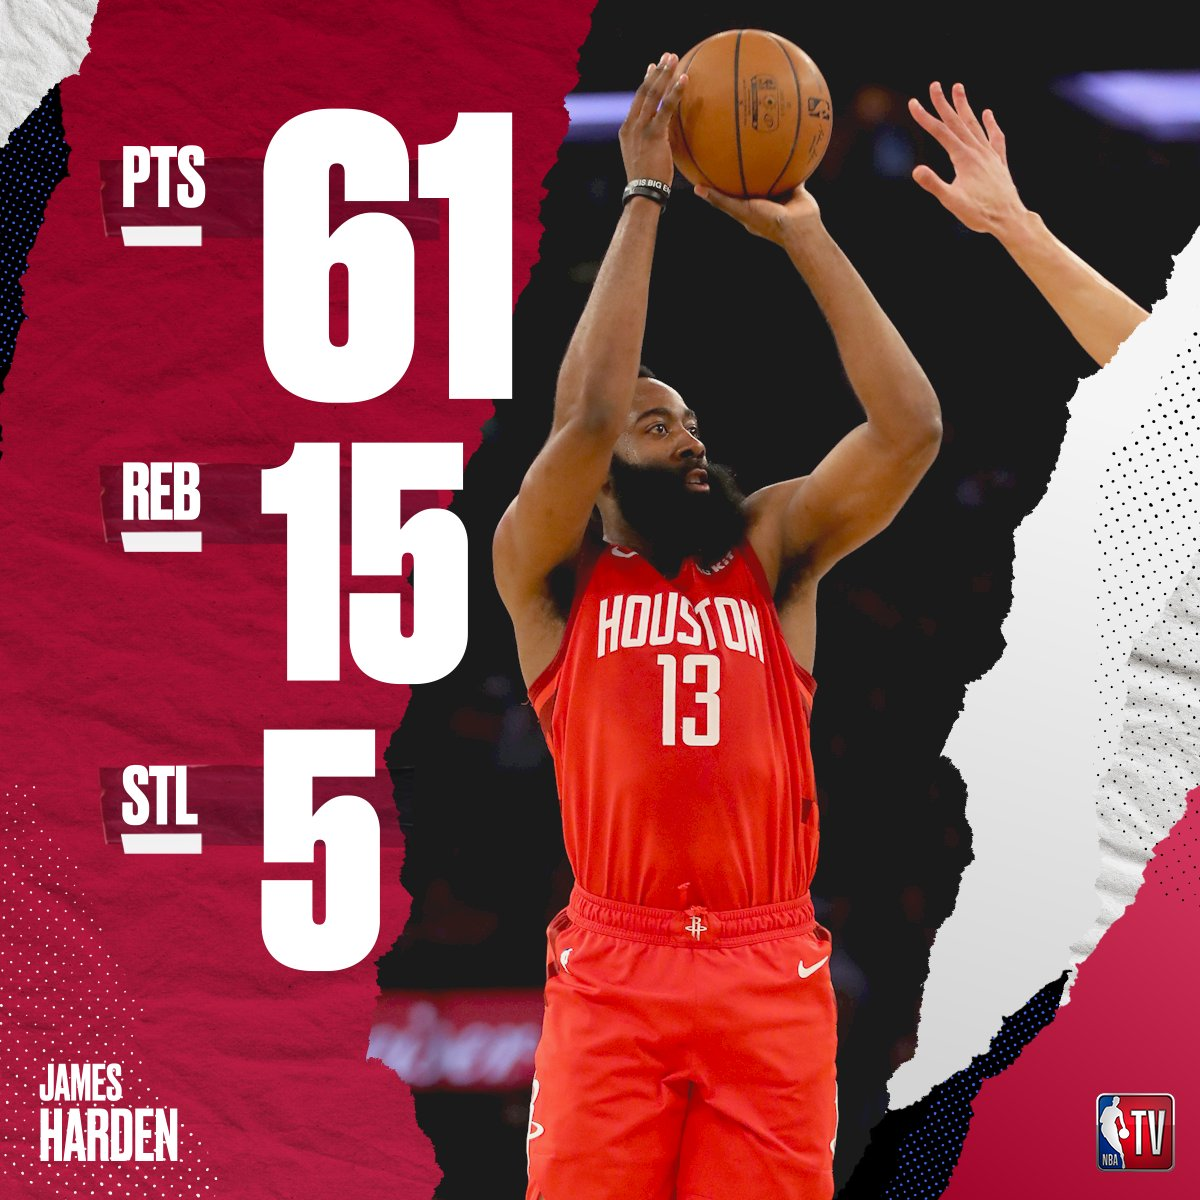 James Harden ties Kobe Bryant for the most points scored by an opponent at MSG! 🚀  #Rockets